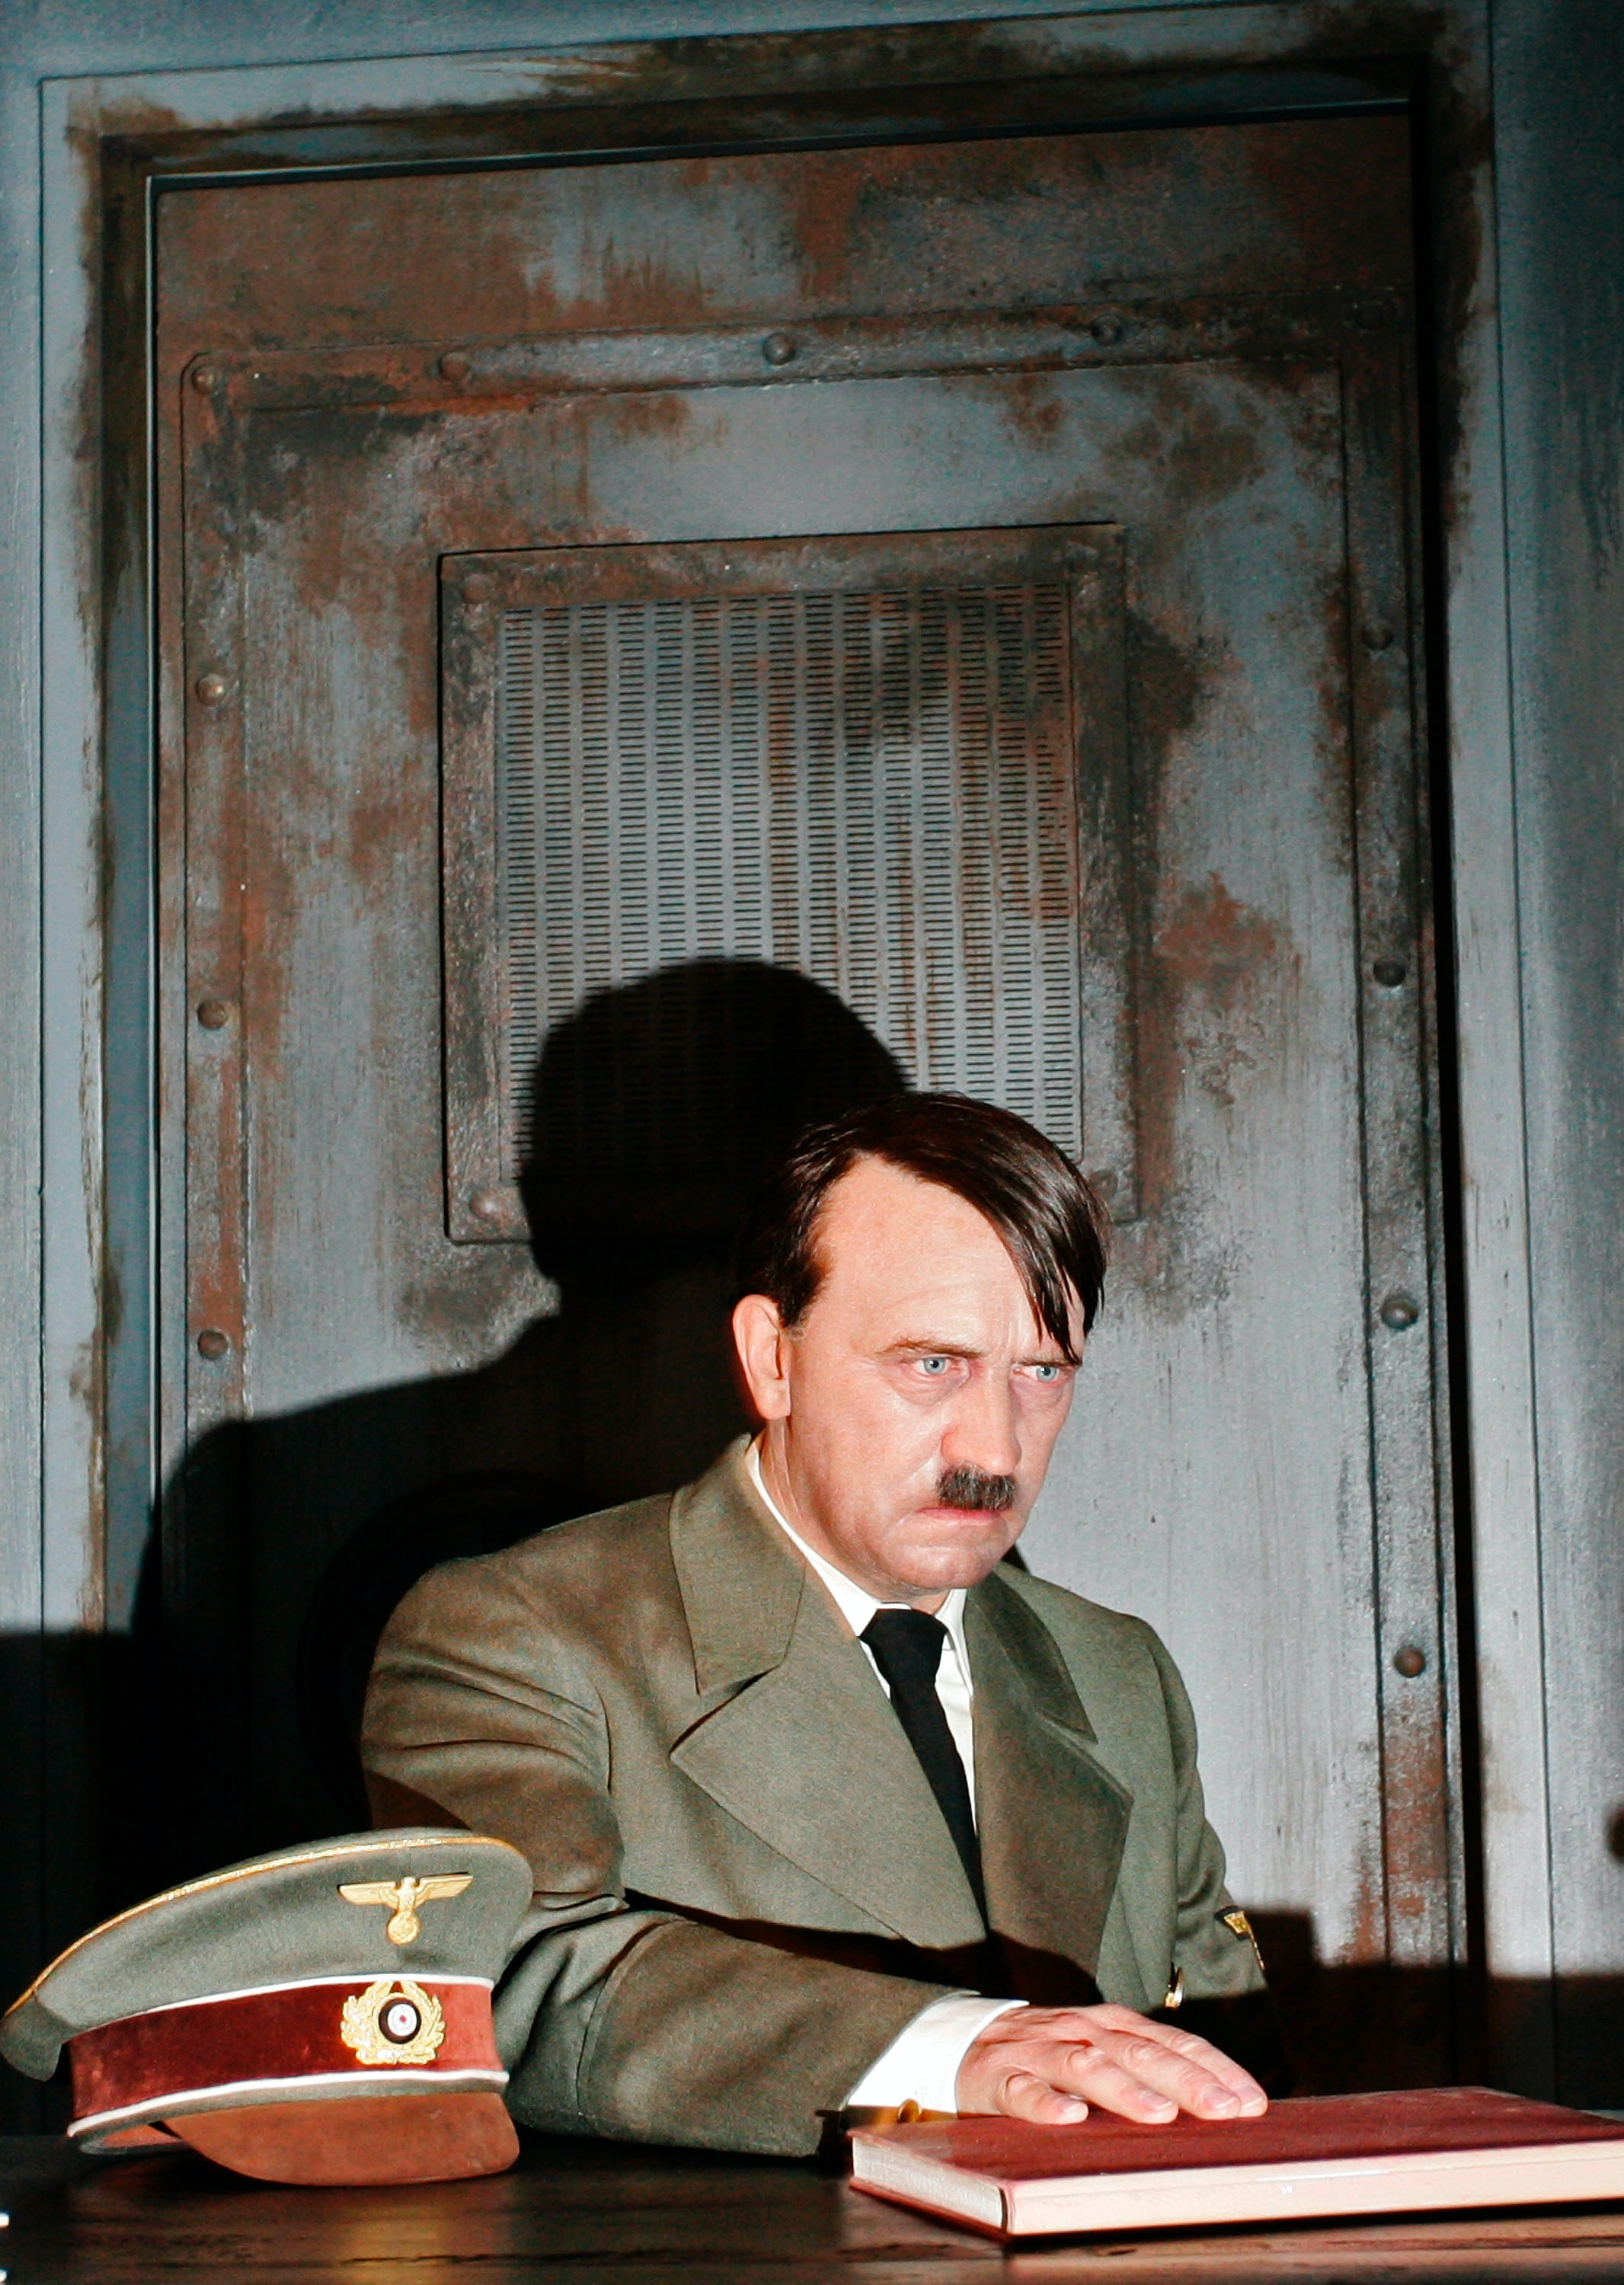 Adolf Hitler, Crystal Meth Addict? The Documentary 'Hitler's